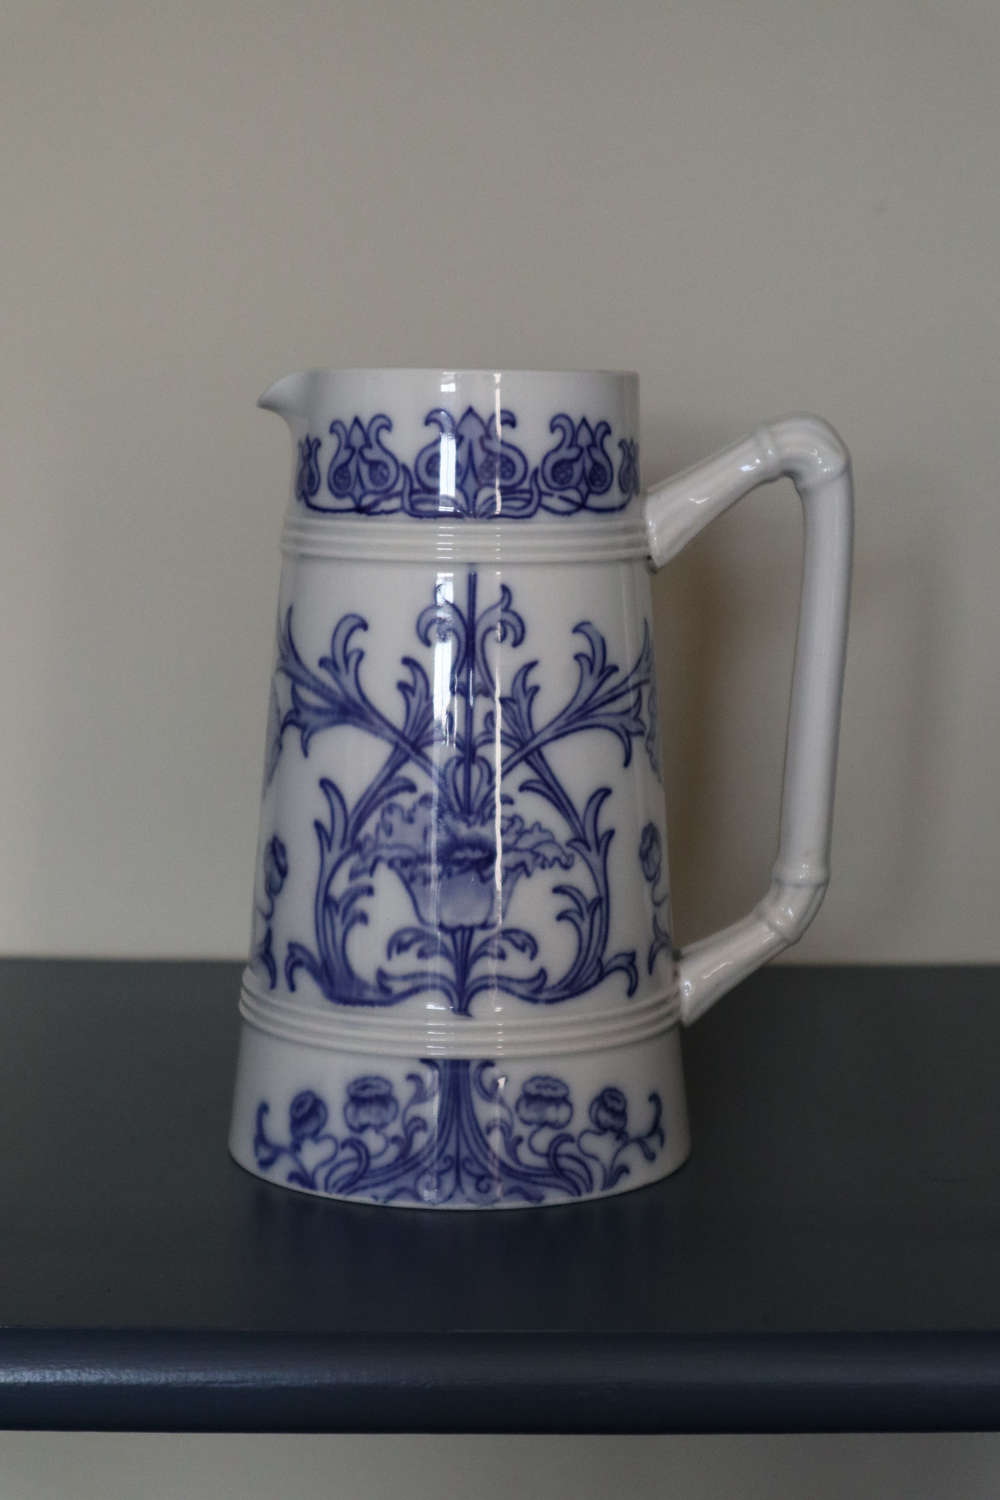 Arts & Crafts / Art Nouveau, James Macintyre & Co, B&W jug c.1890.